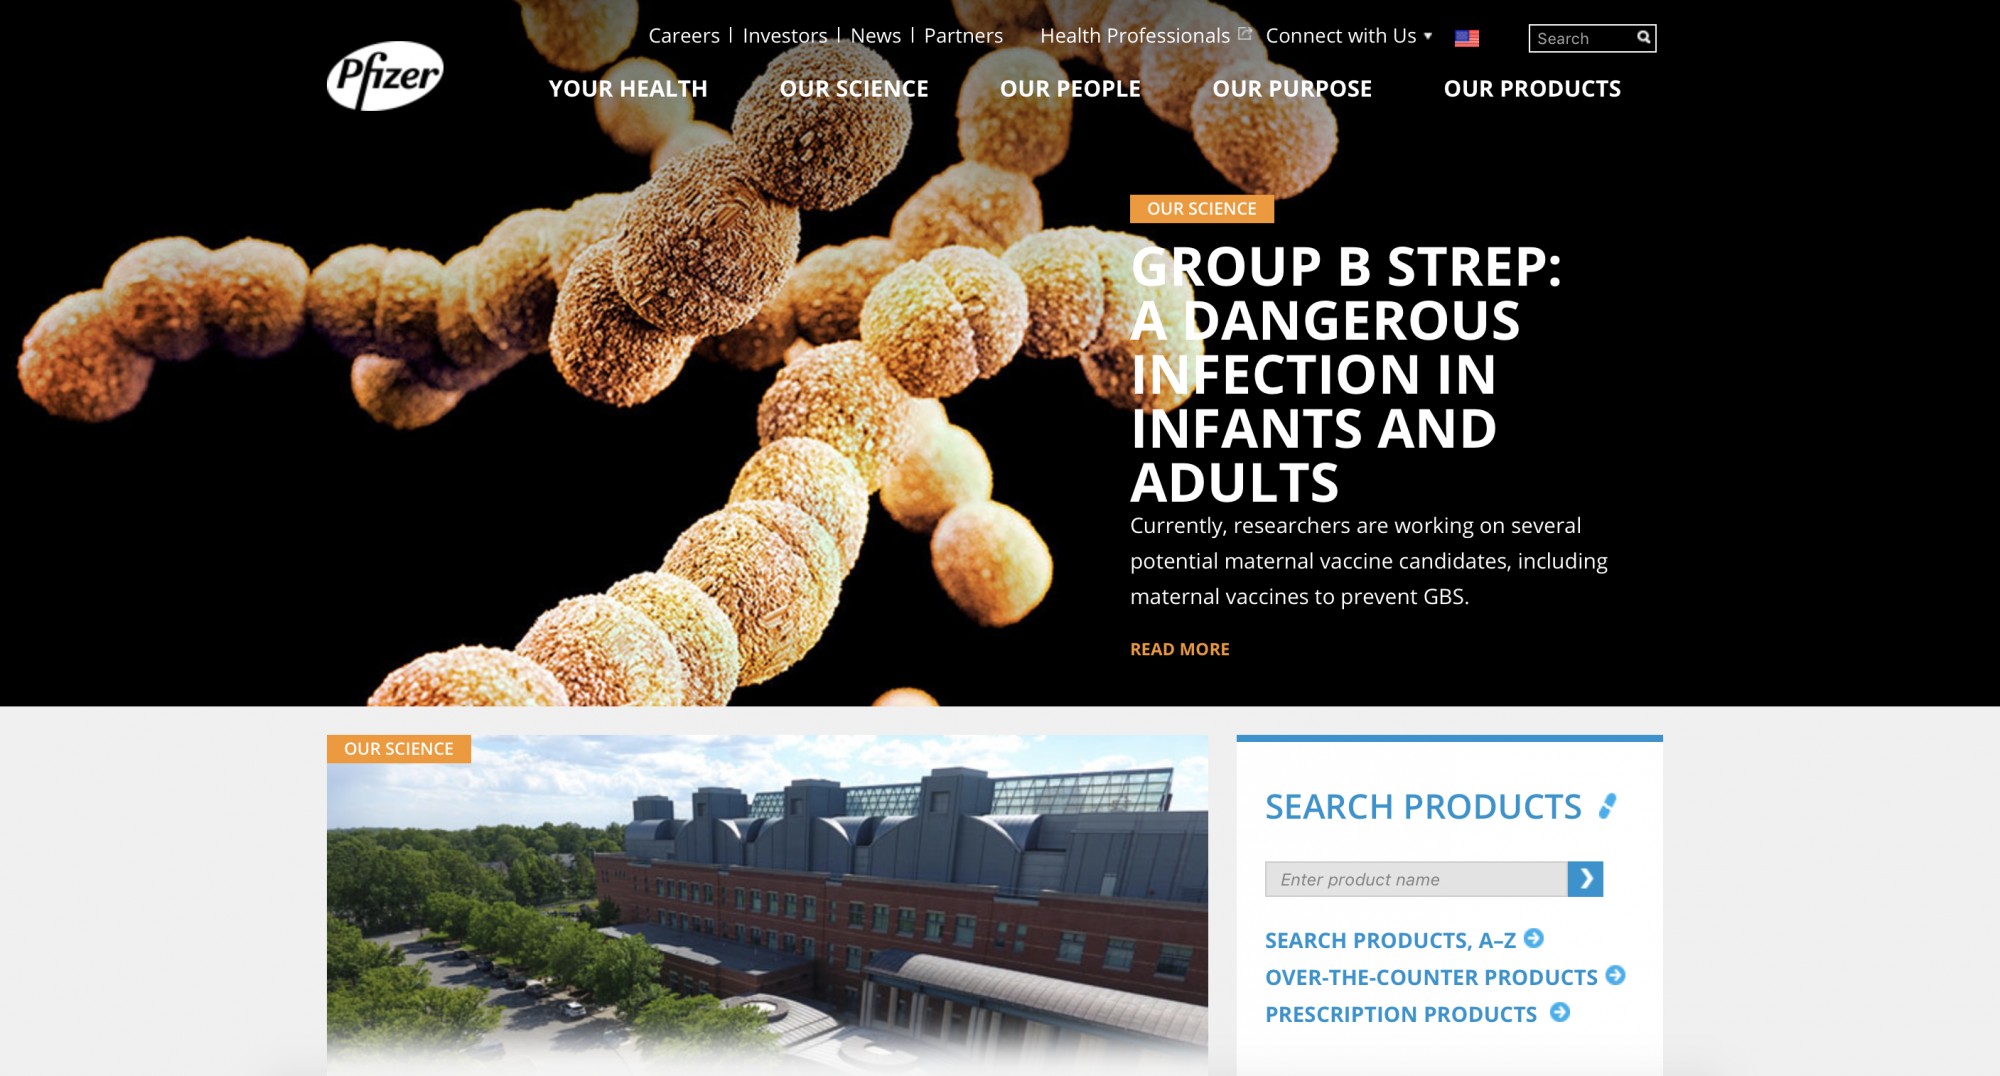 Pfizer website